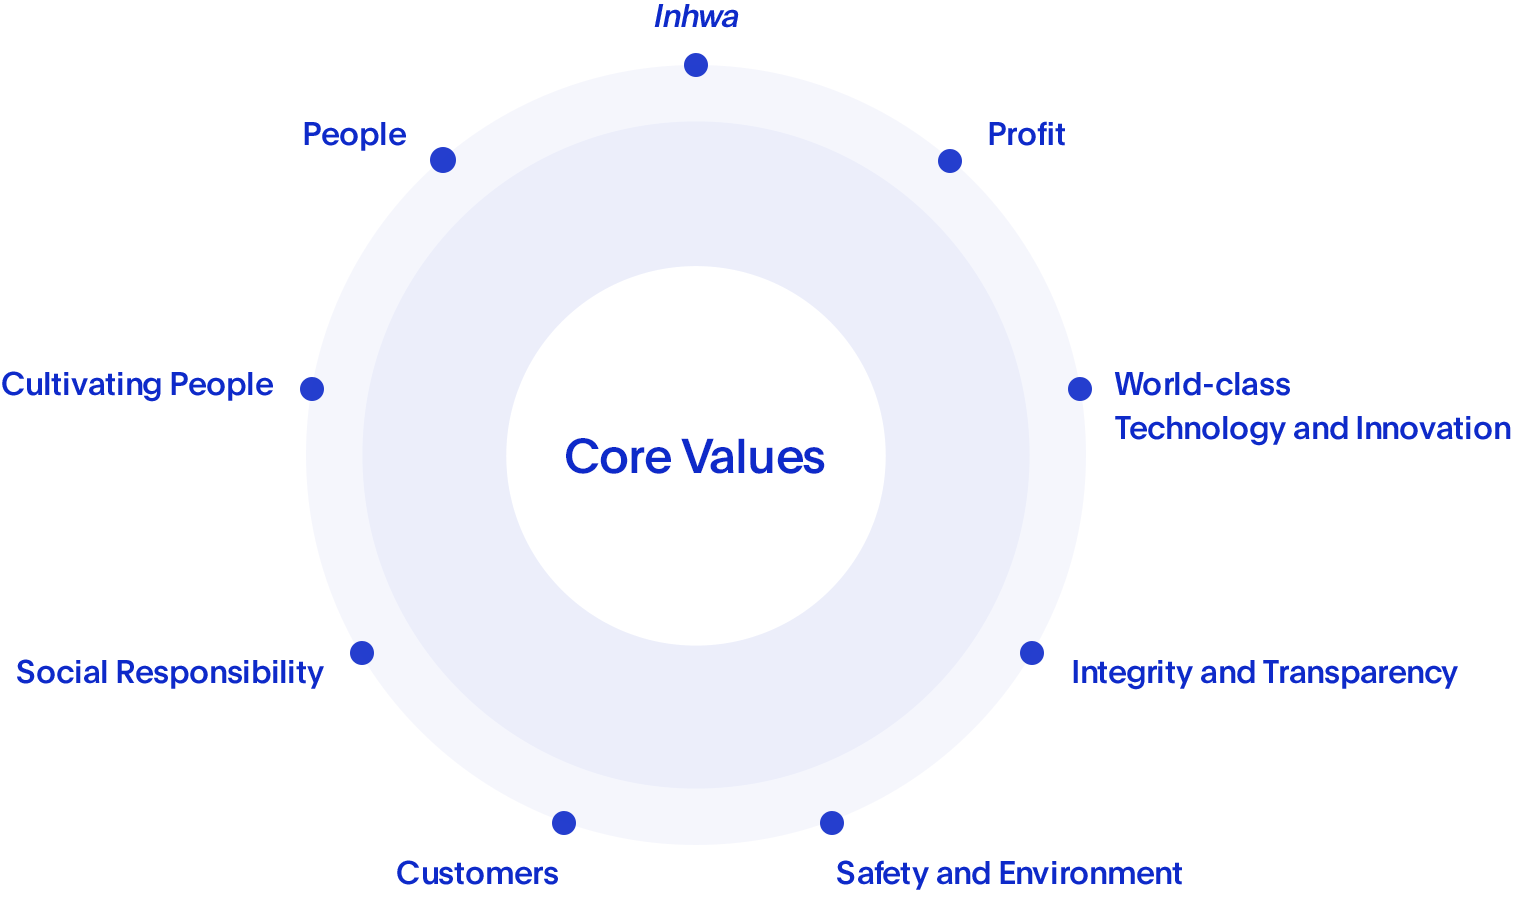 Core Values - People, Inhwa, Profit, Cultivating People, World-class Technology and Innovation, Social Responsibility, Integrity and Transparency, Customers, Safety and Environment